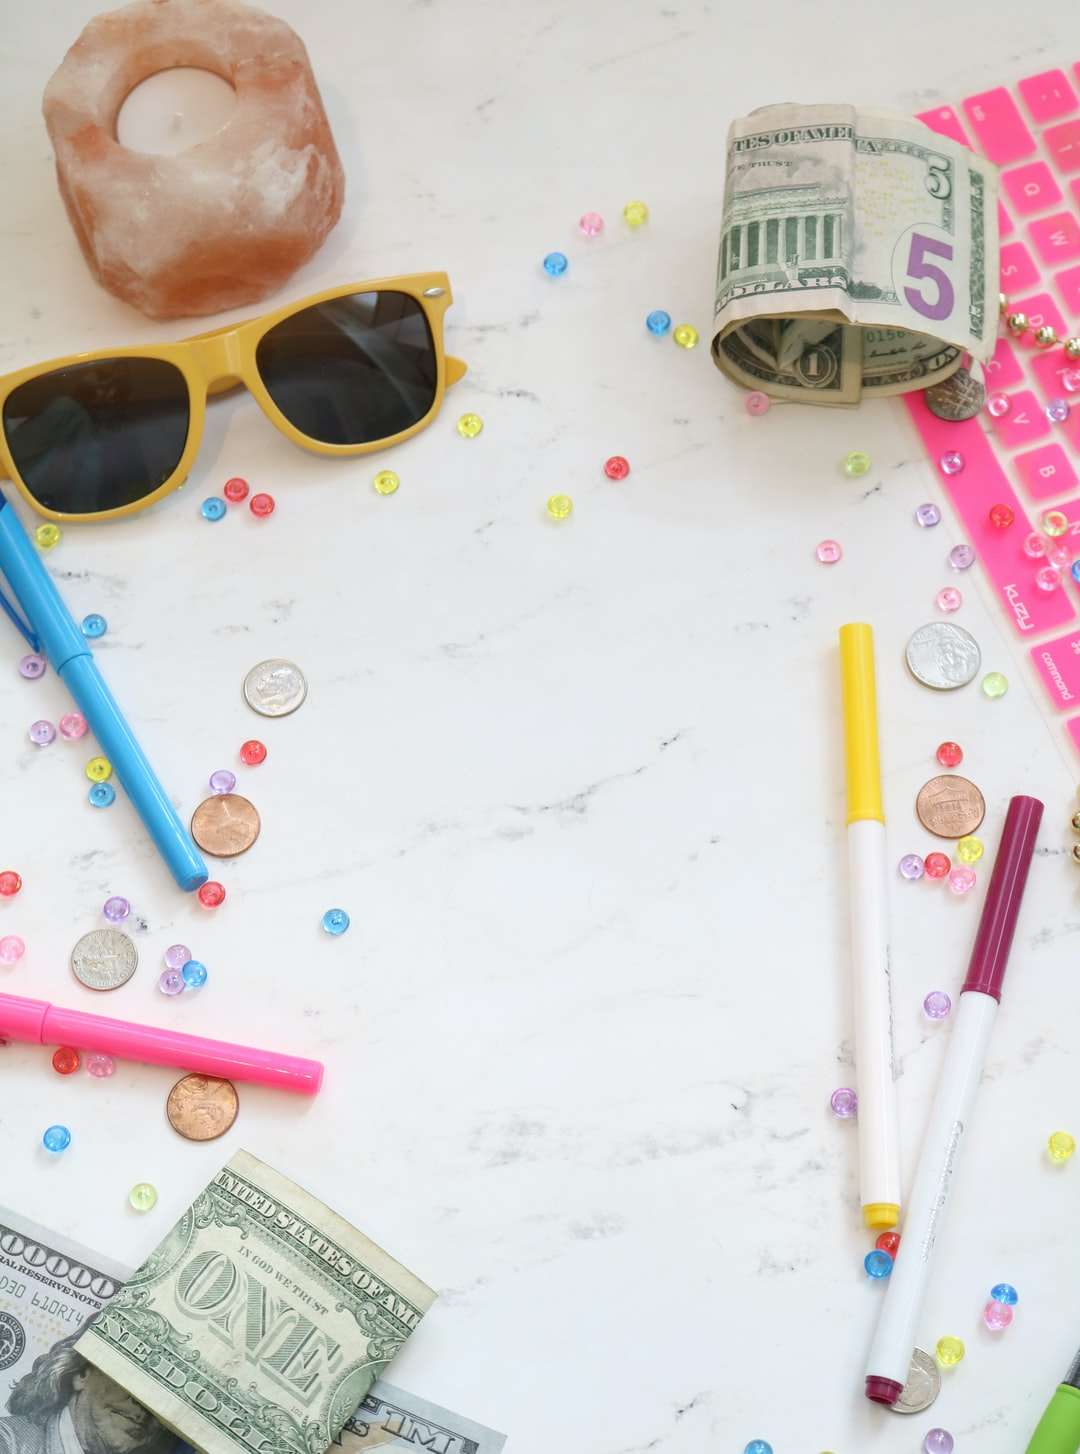 Marble money stock photo and money styled stock photo for personal finance bloggers, business coaches, and entrepreneurs with a pink keyboard, colorful pens, cash, and more.